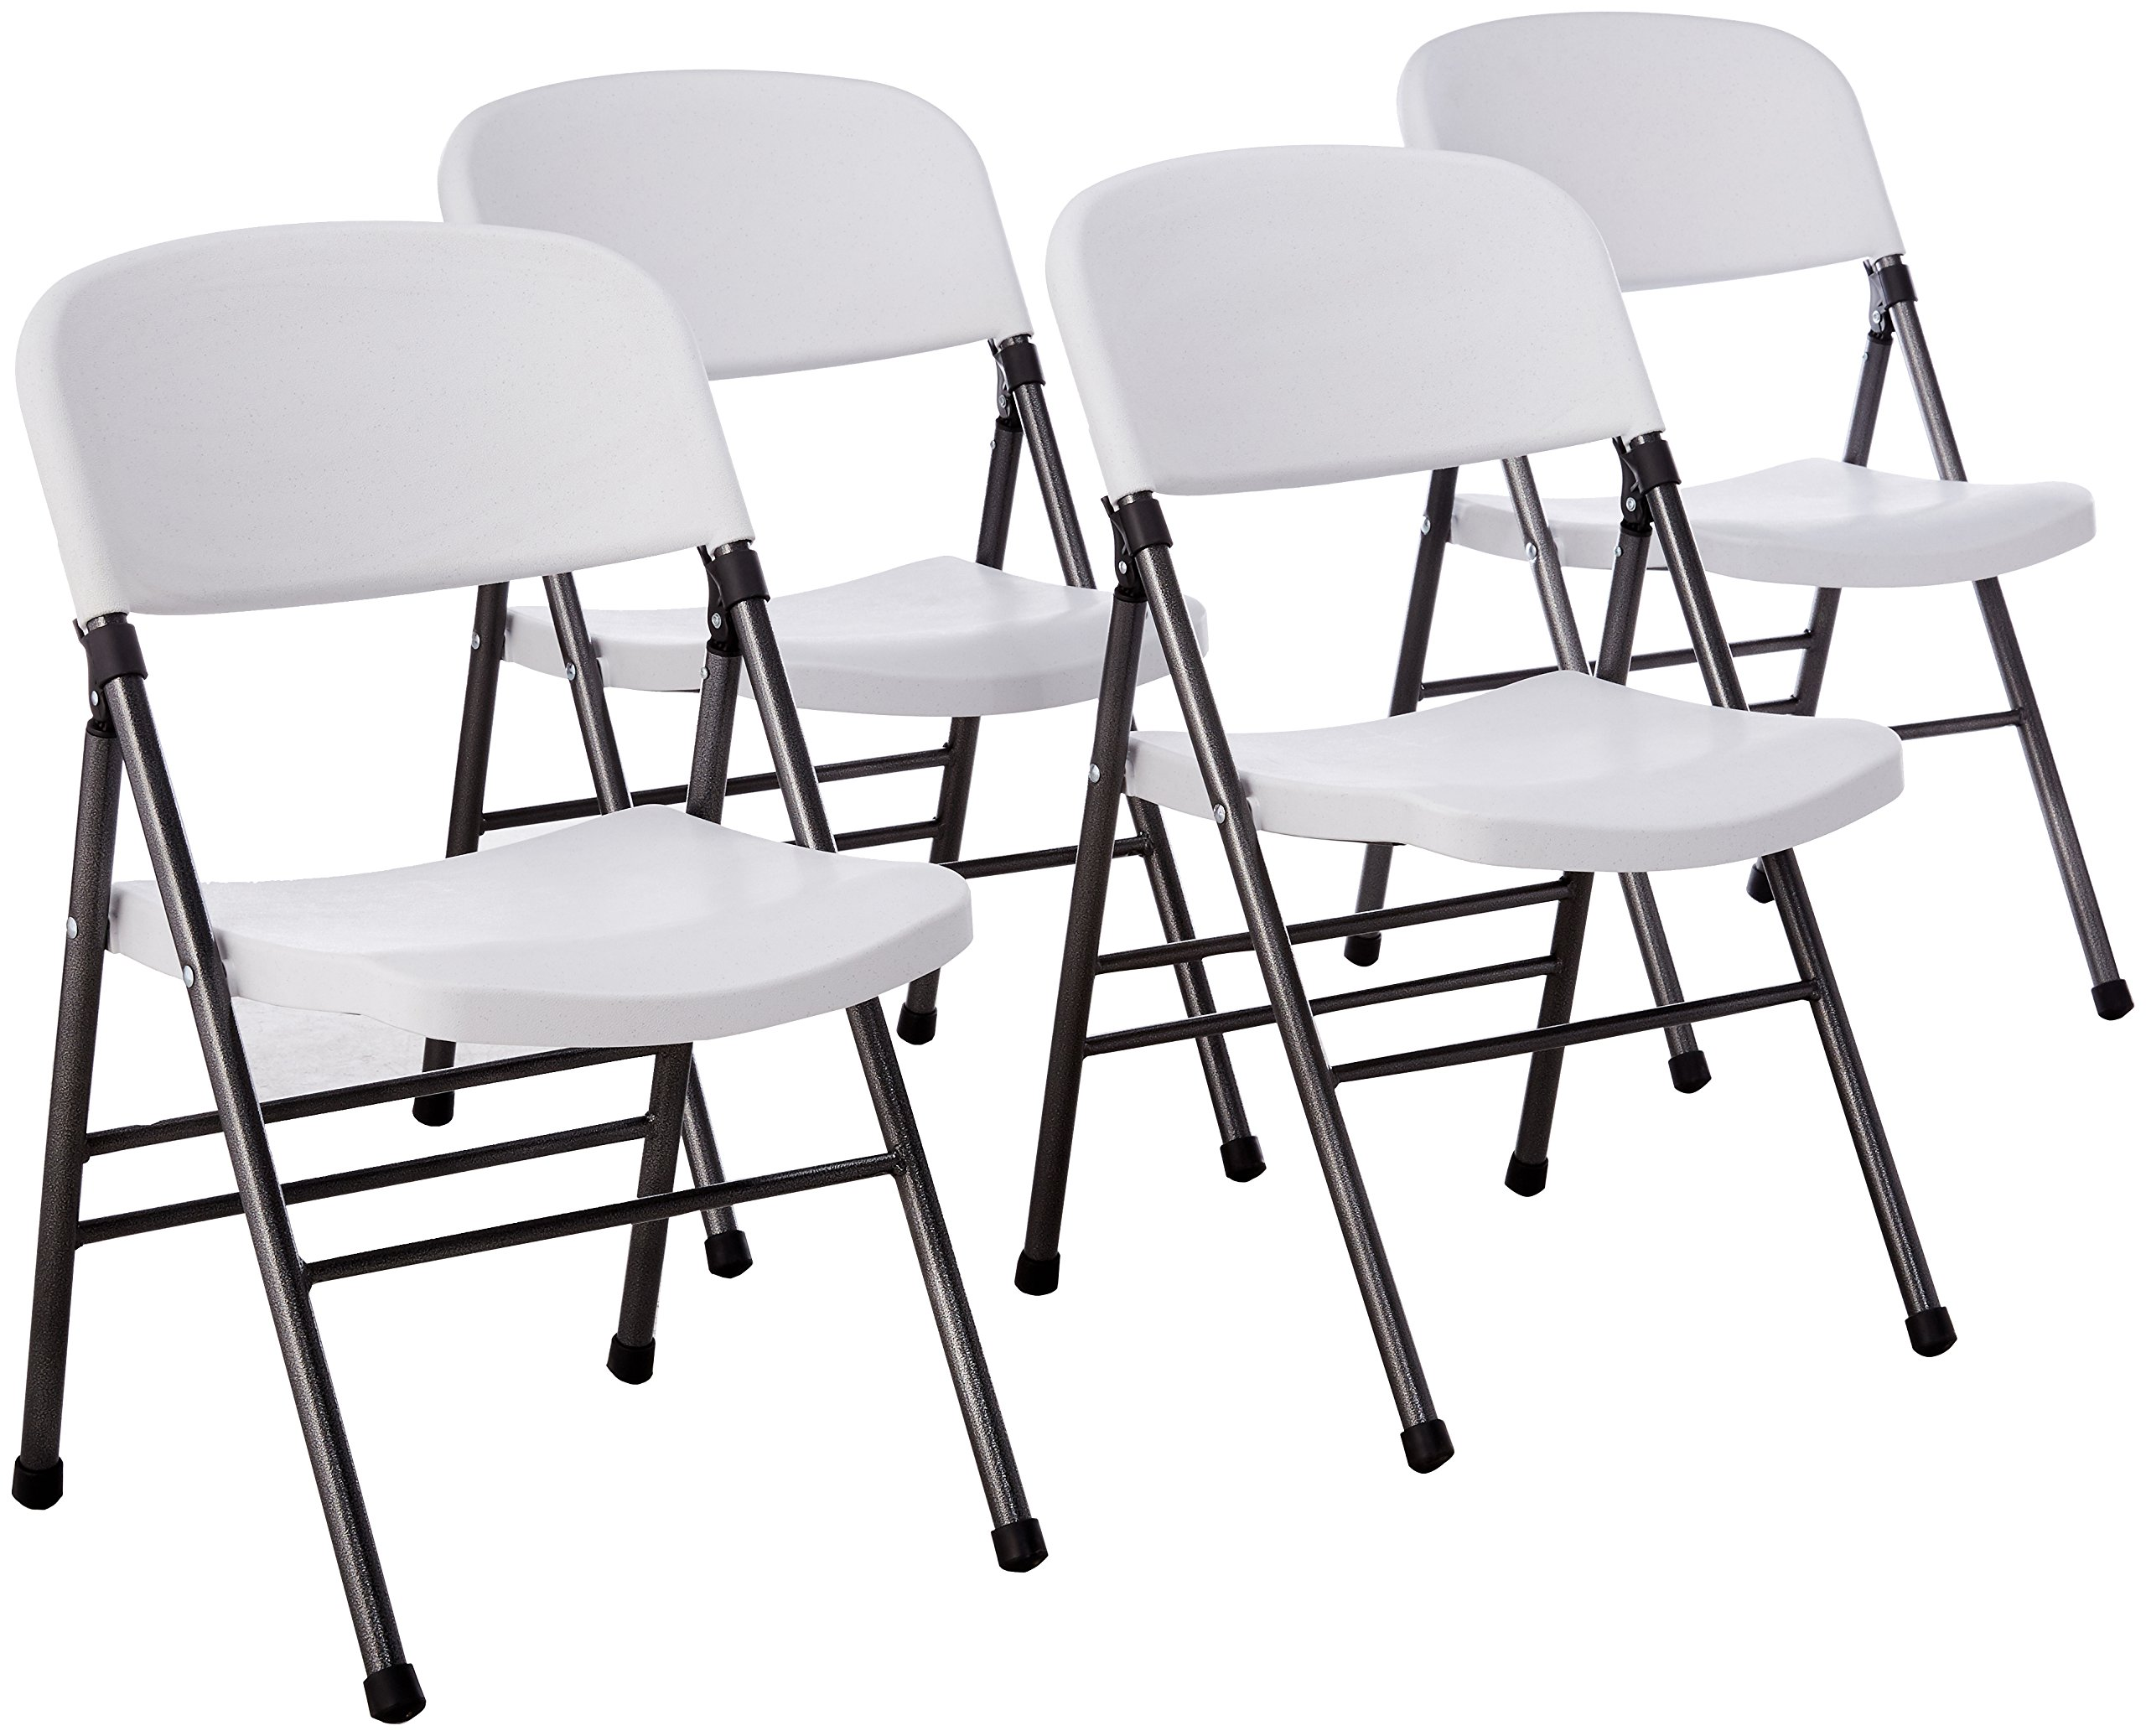 Cosco Resin Folding Chair with Molded Seat and Back White Speckle (4-pack) by Cosco